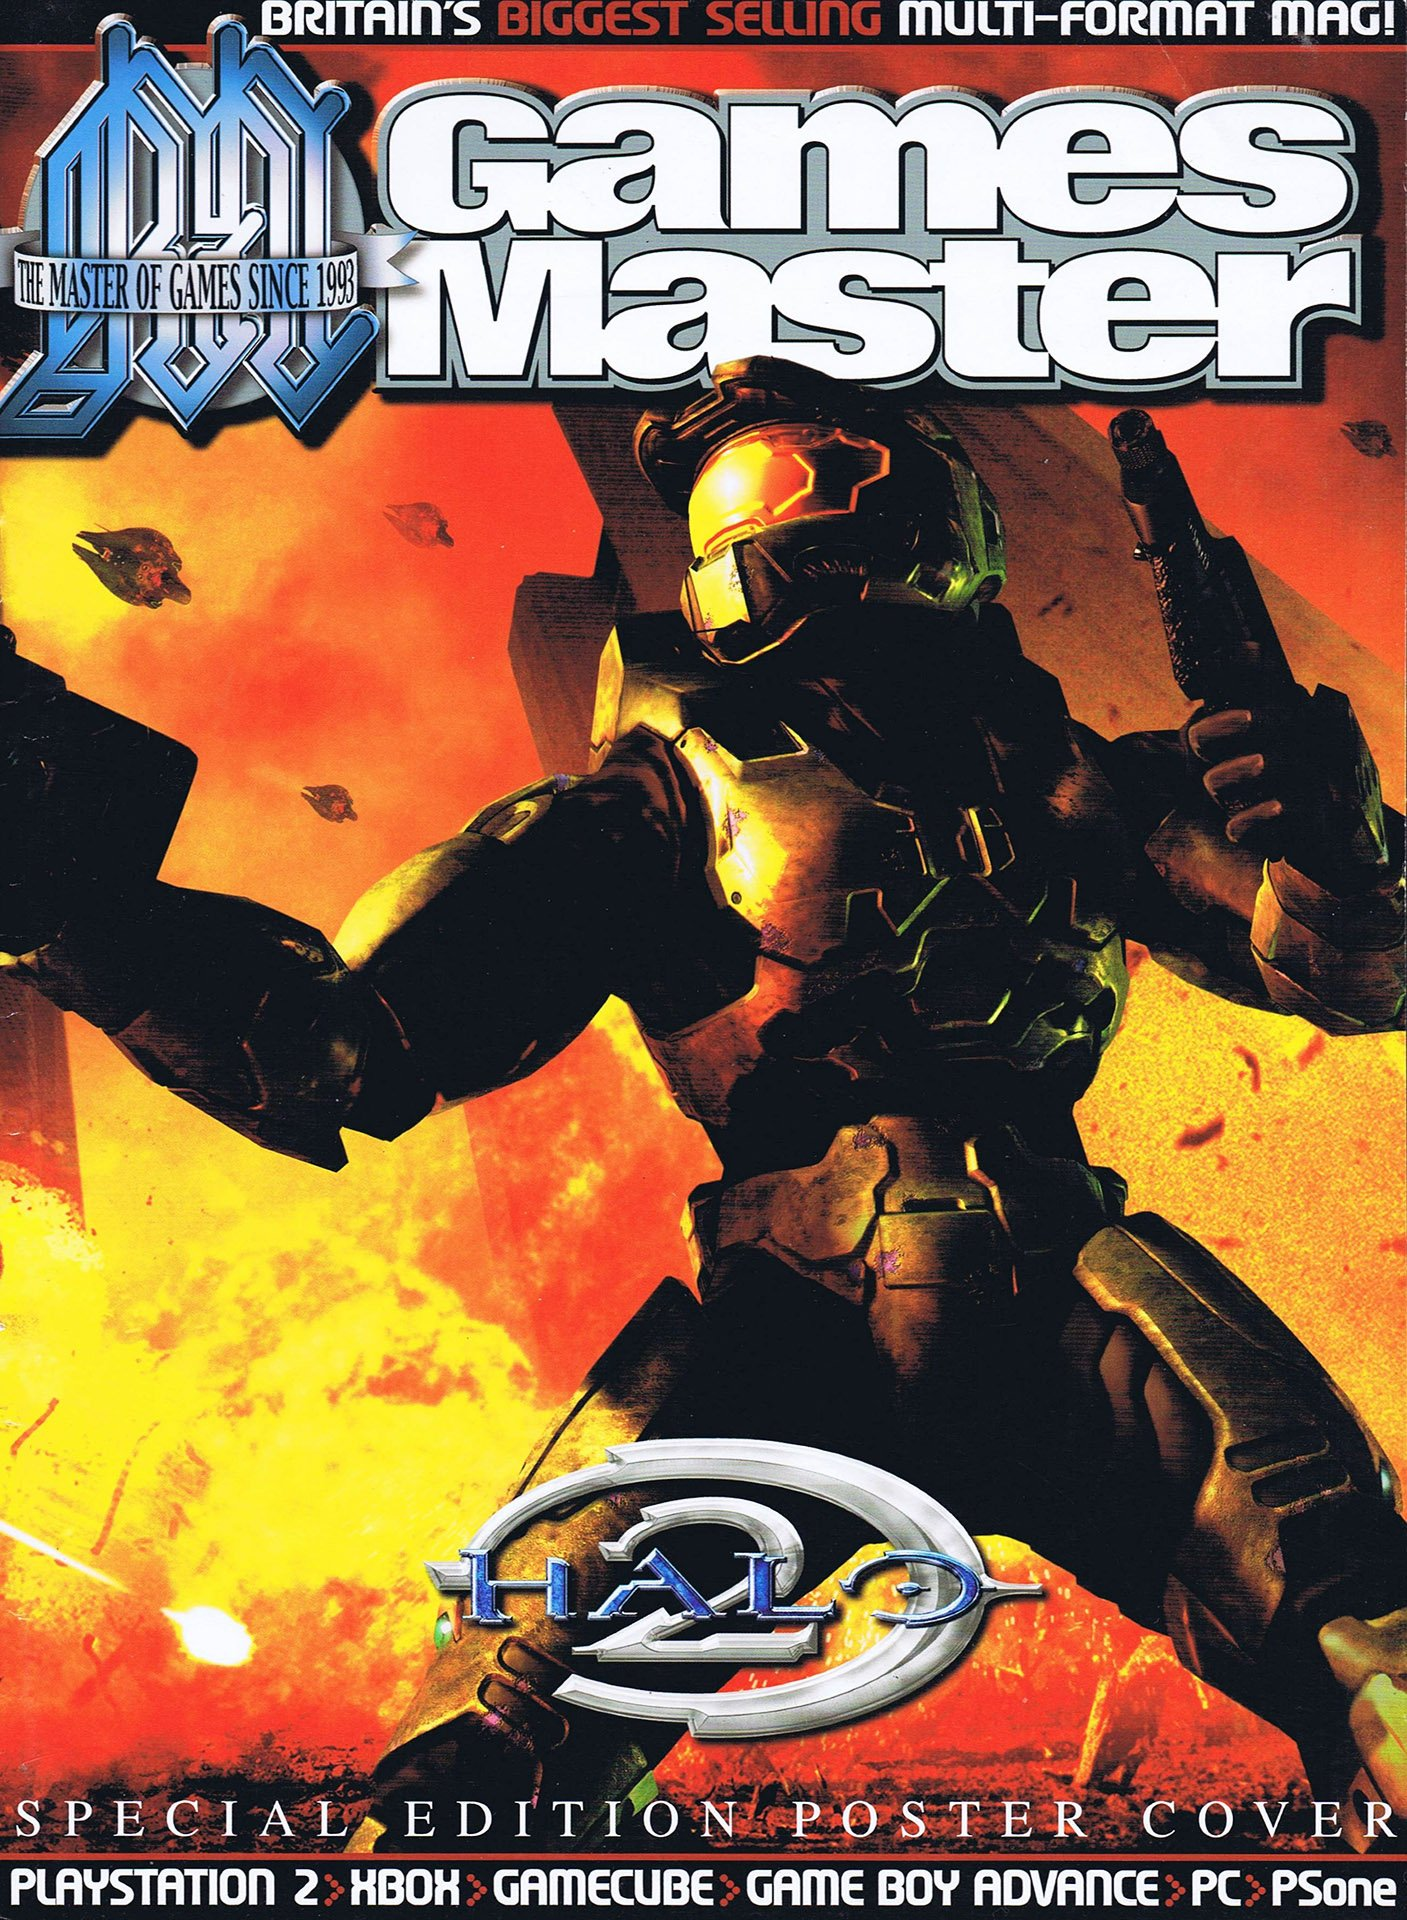 GamesMaster Issue 154 (Xmas 2004) (special edition cover)